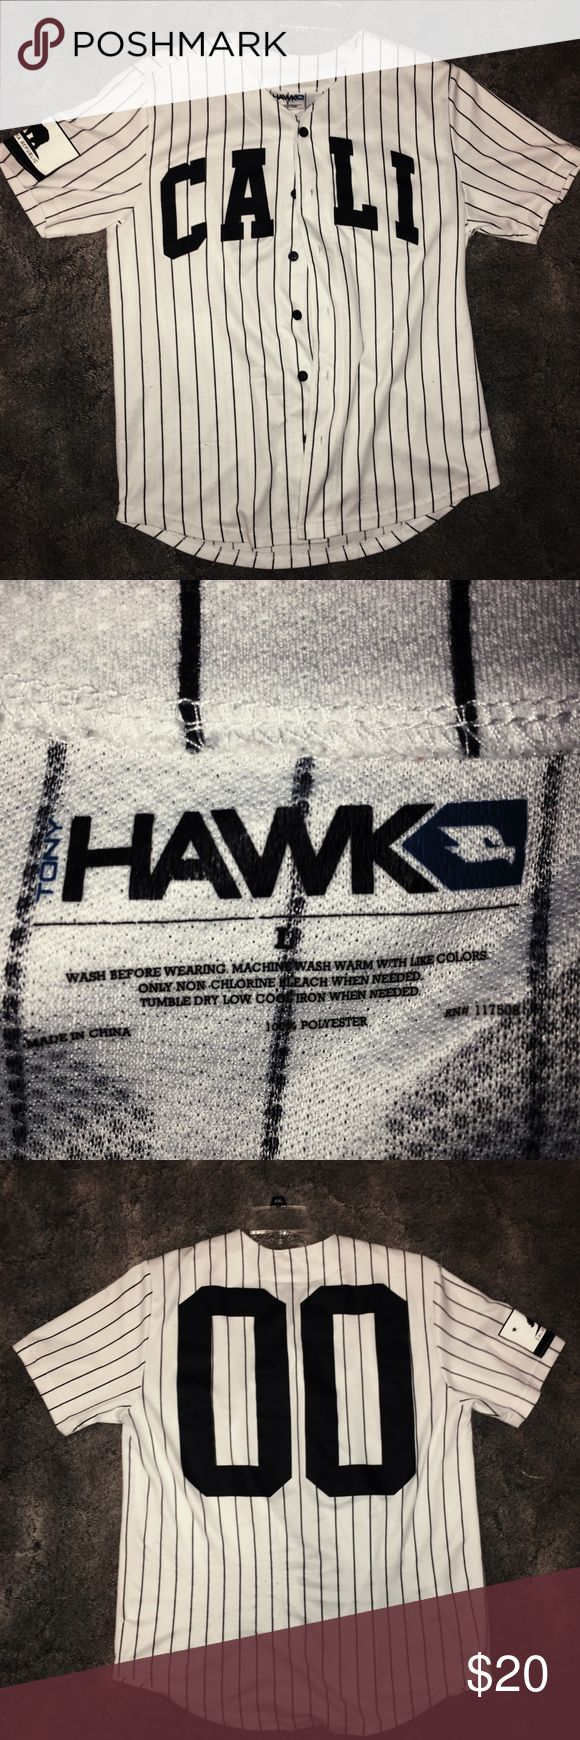 California Tony Hawk #00 Not used that much just been sitting in the closet for a will IT COULD BE FOR MEN OR KIDS IT DEPENDS Tony Hawk Other